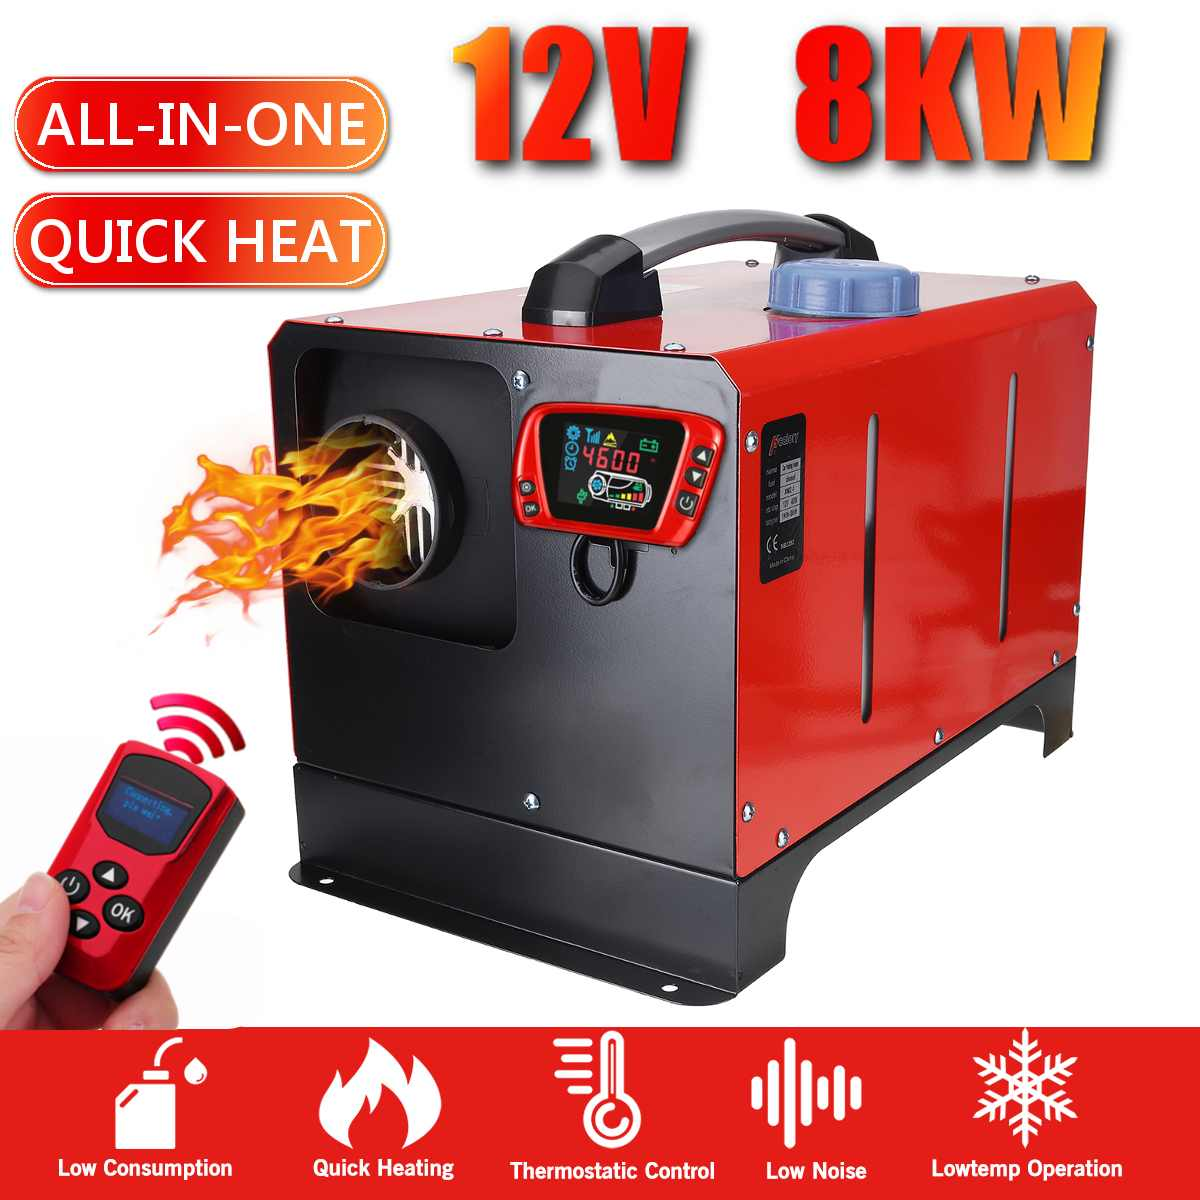 1-8KW 12V All In One Unit  Car Heating Tool Diesel Air Heater Single Hole LCD Monitor Parking Warmer For Car Truck Bus Boat RV